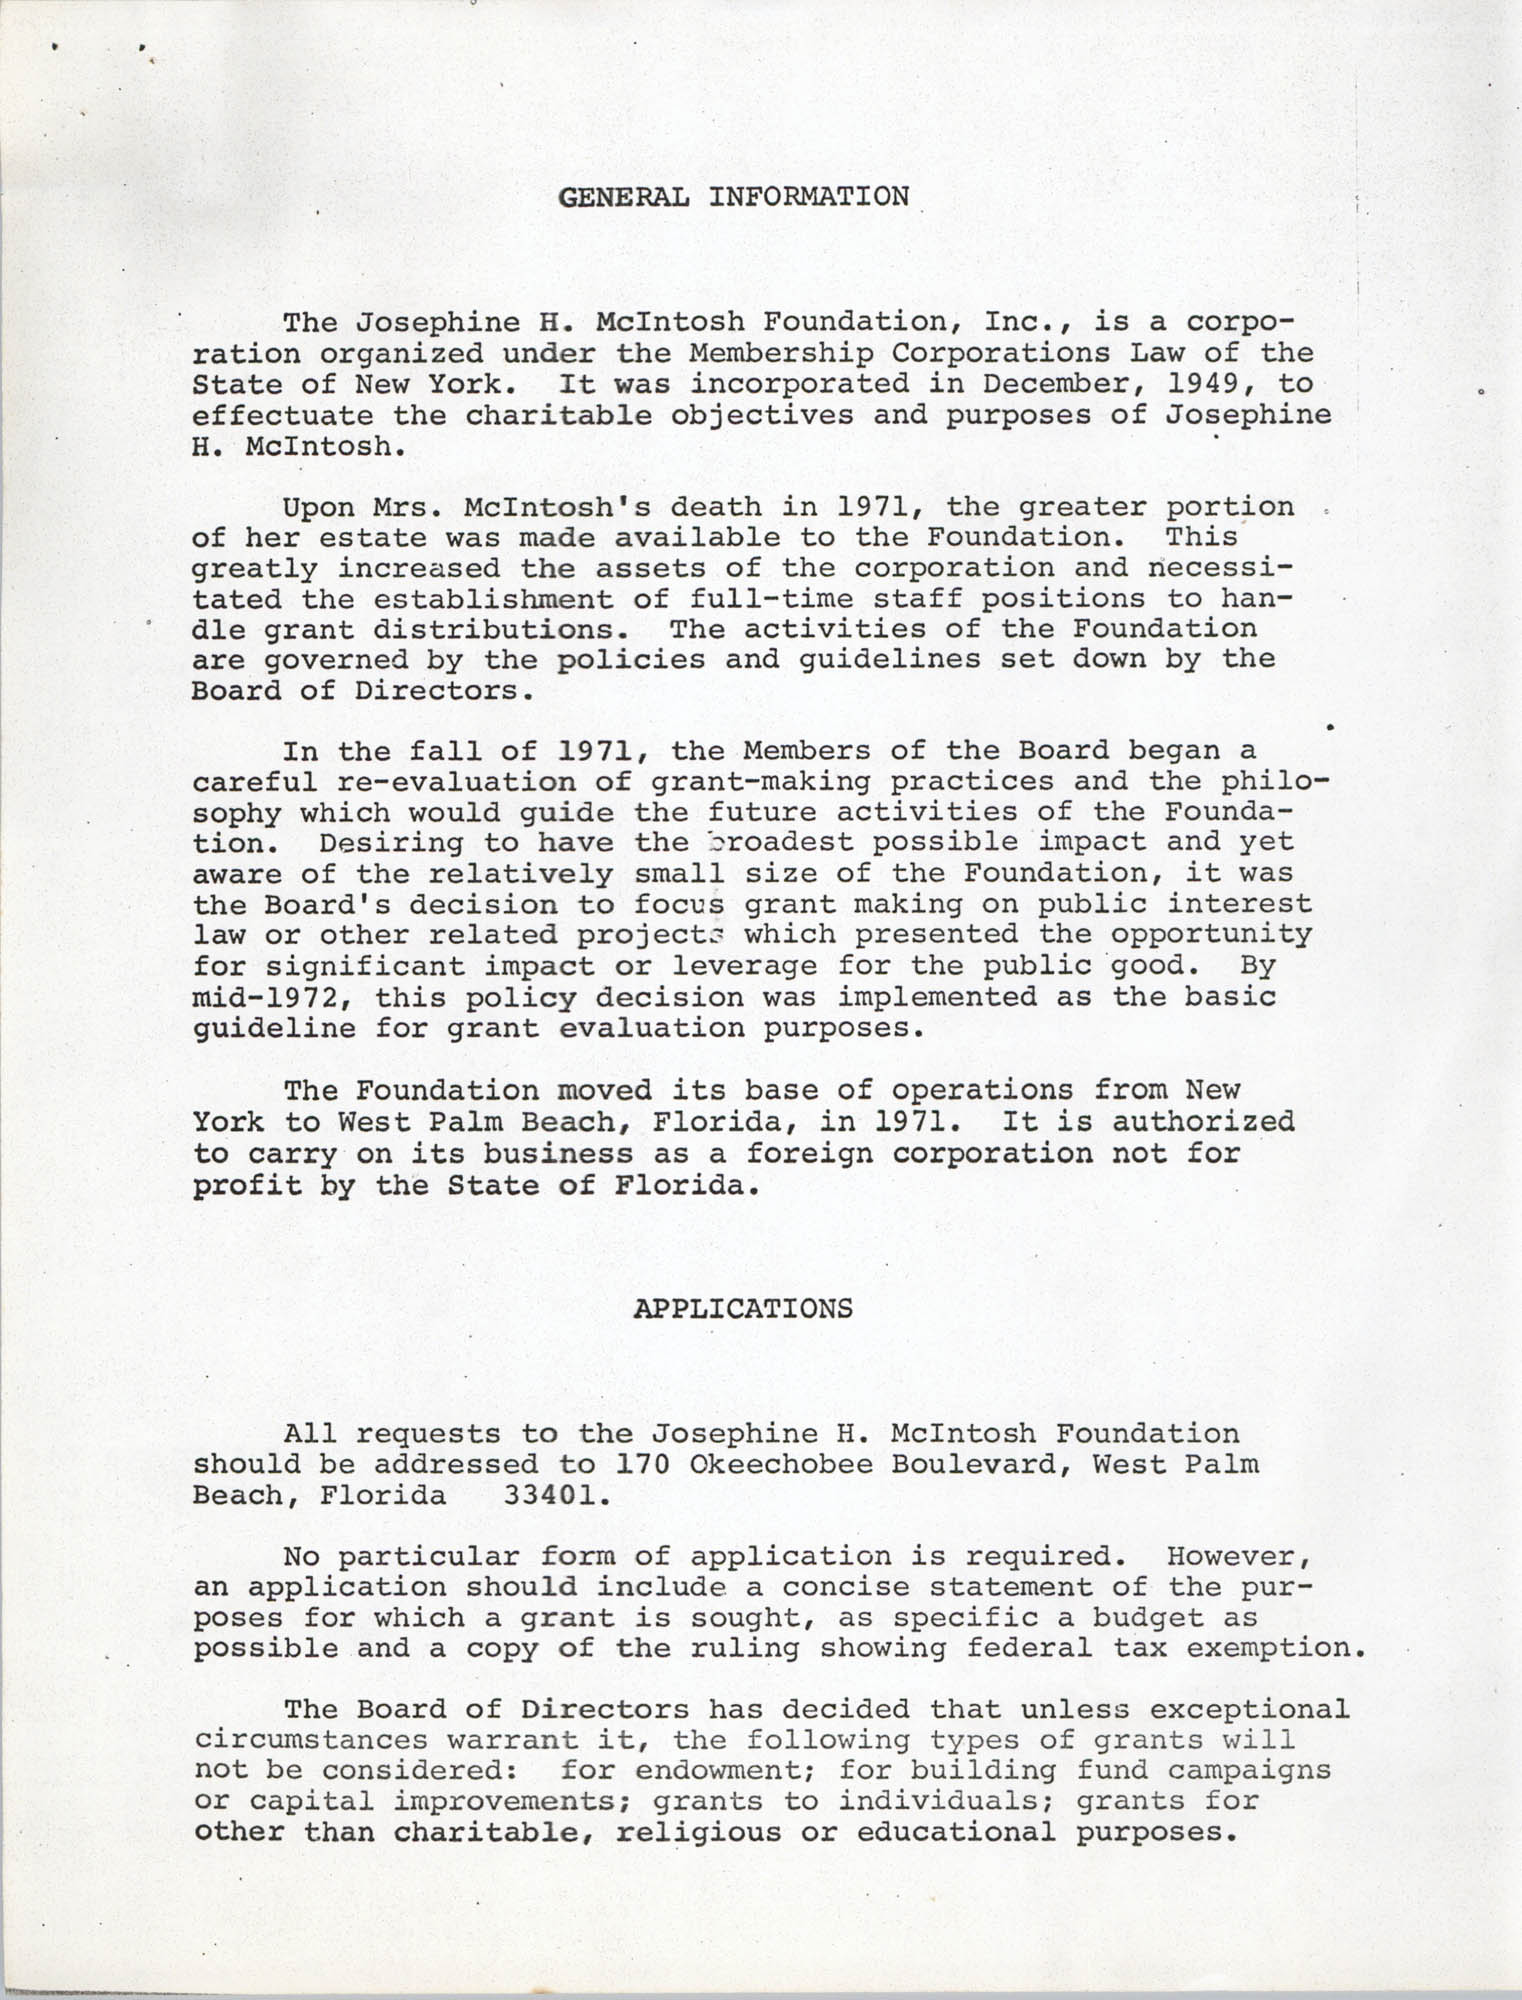 Josephine H. McIntosh Foundation Grant-Making Activities Report for 1972, General Information